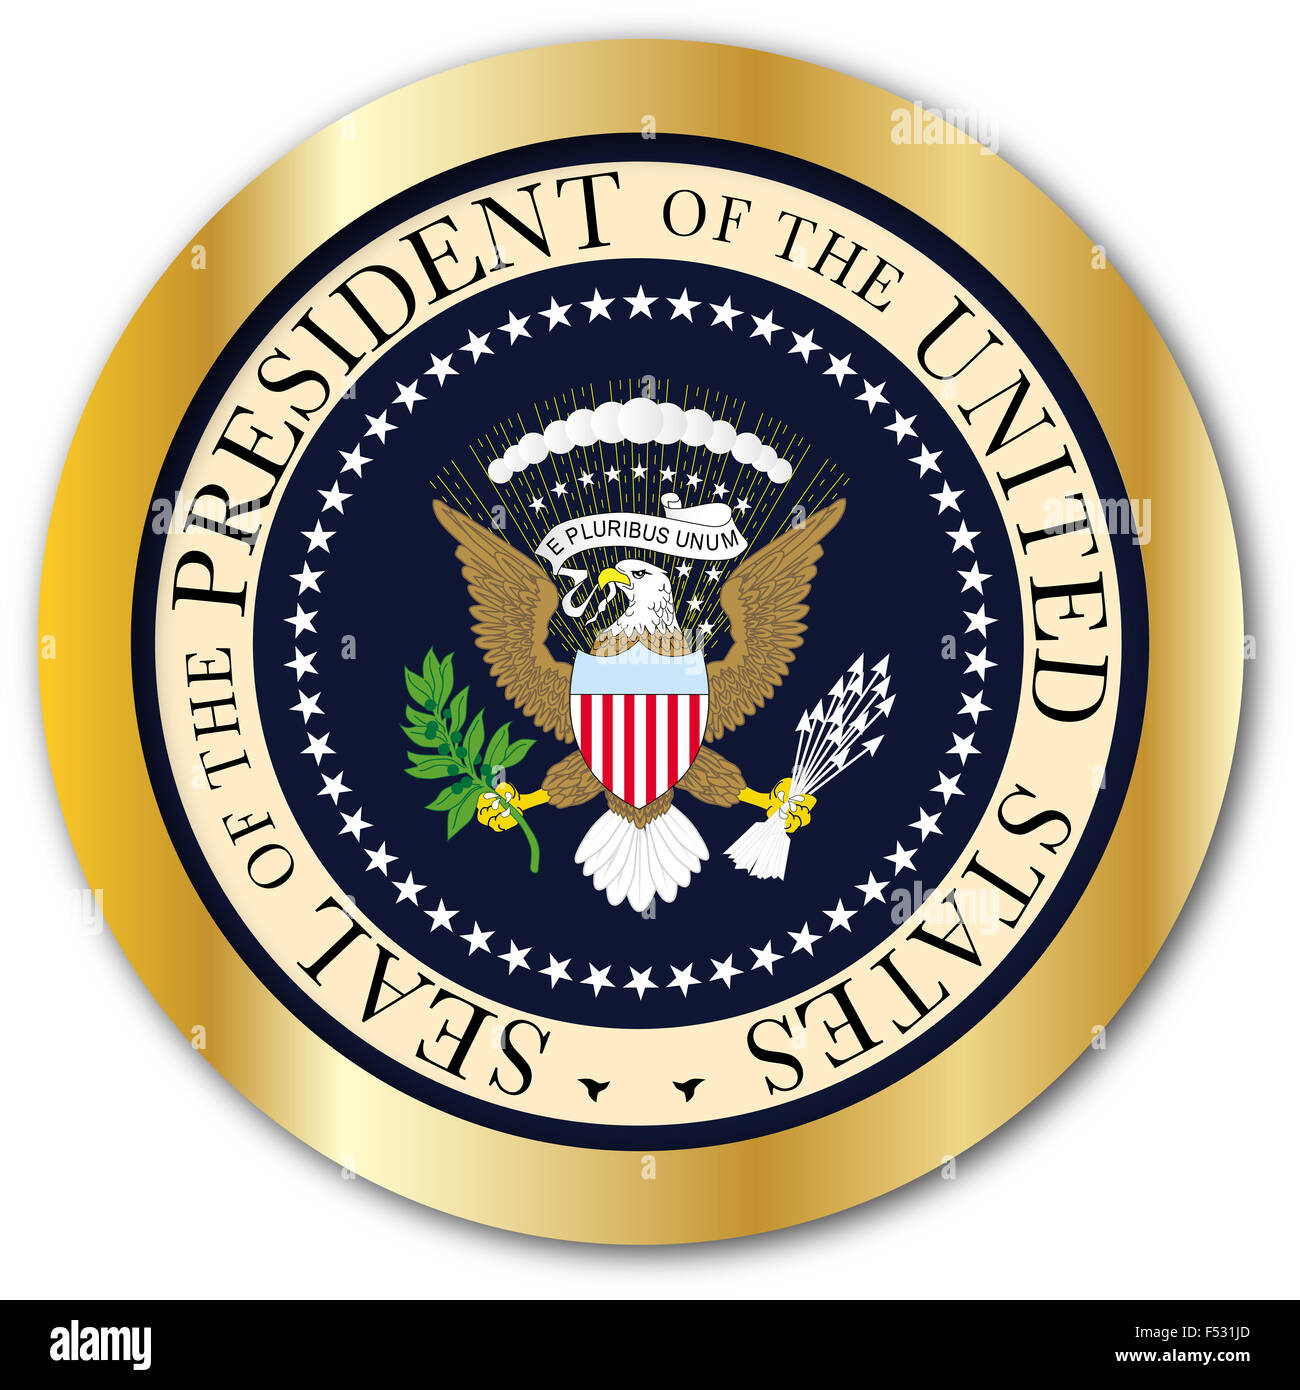 a depiction of the seal of the president of the united states of america as a - Presidents Of The United States Of America